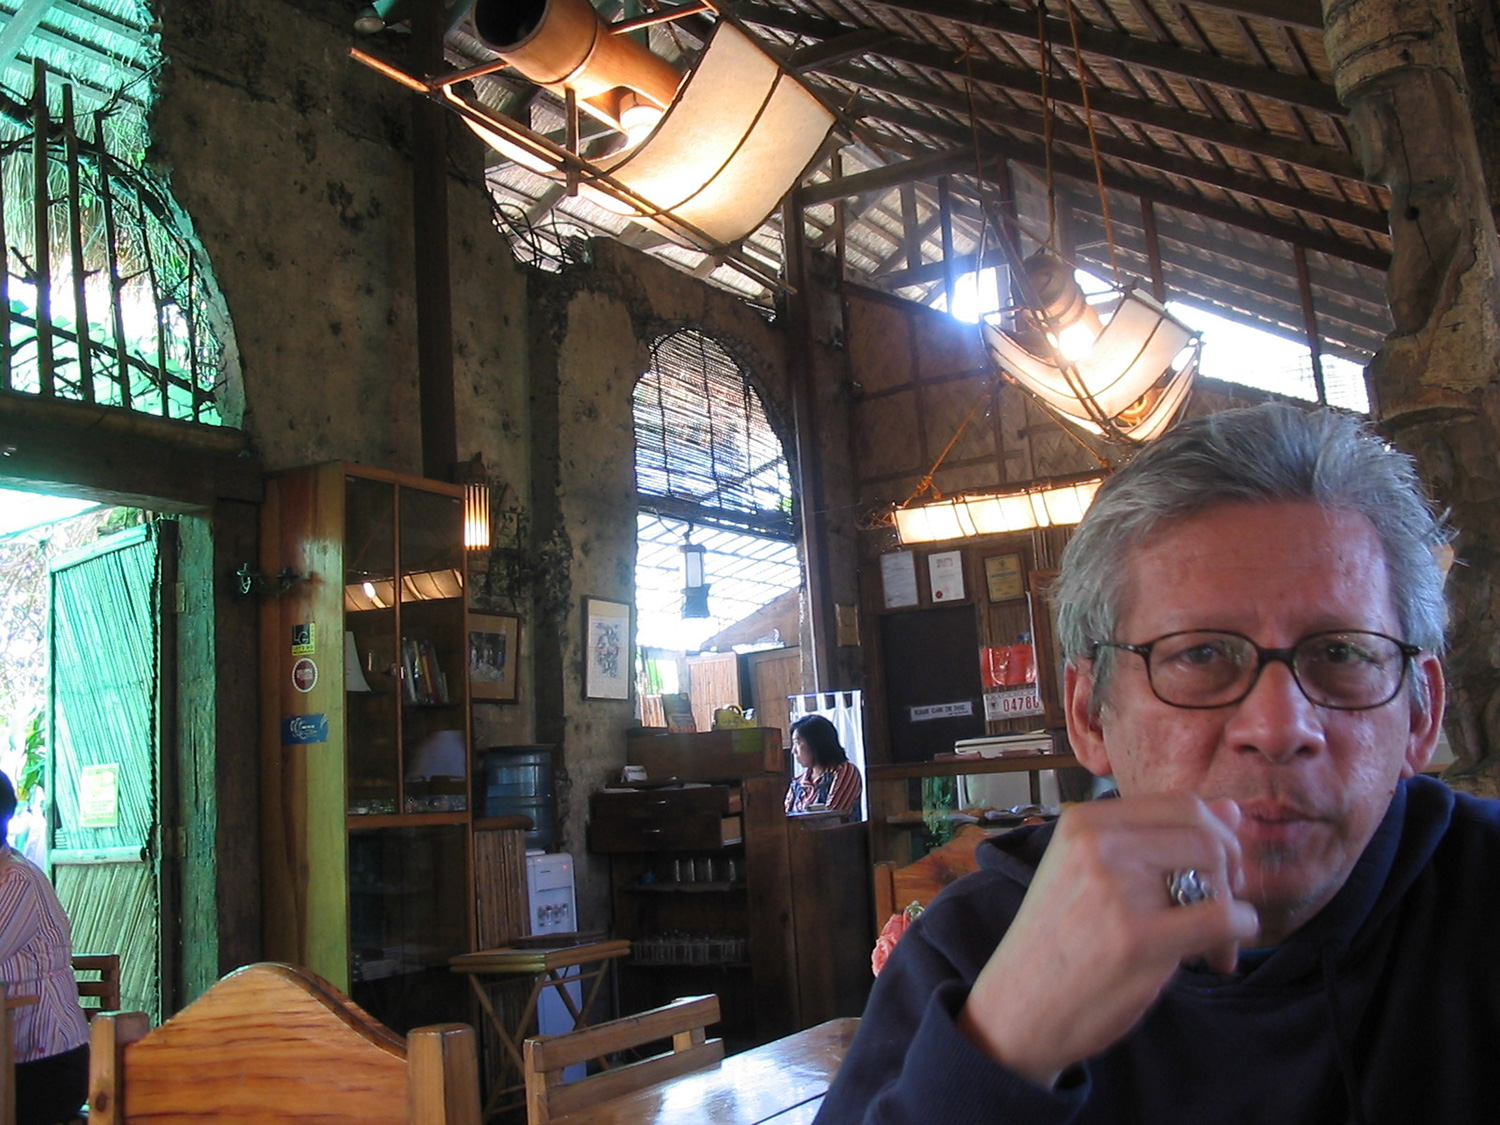 Luis H. Francia at Cafe-by-the-Ruins (Photo courtesy of Luis H. Francia)